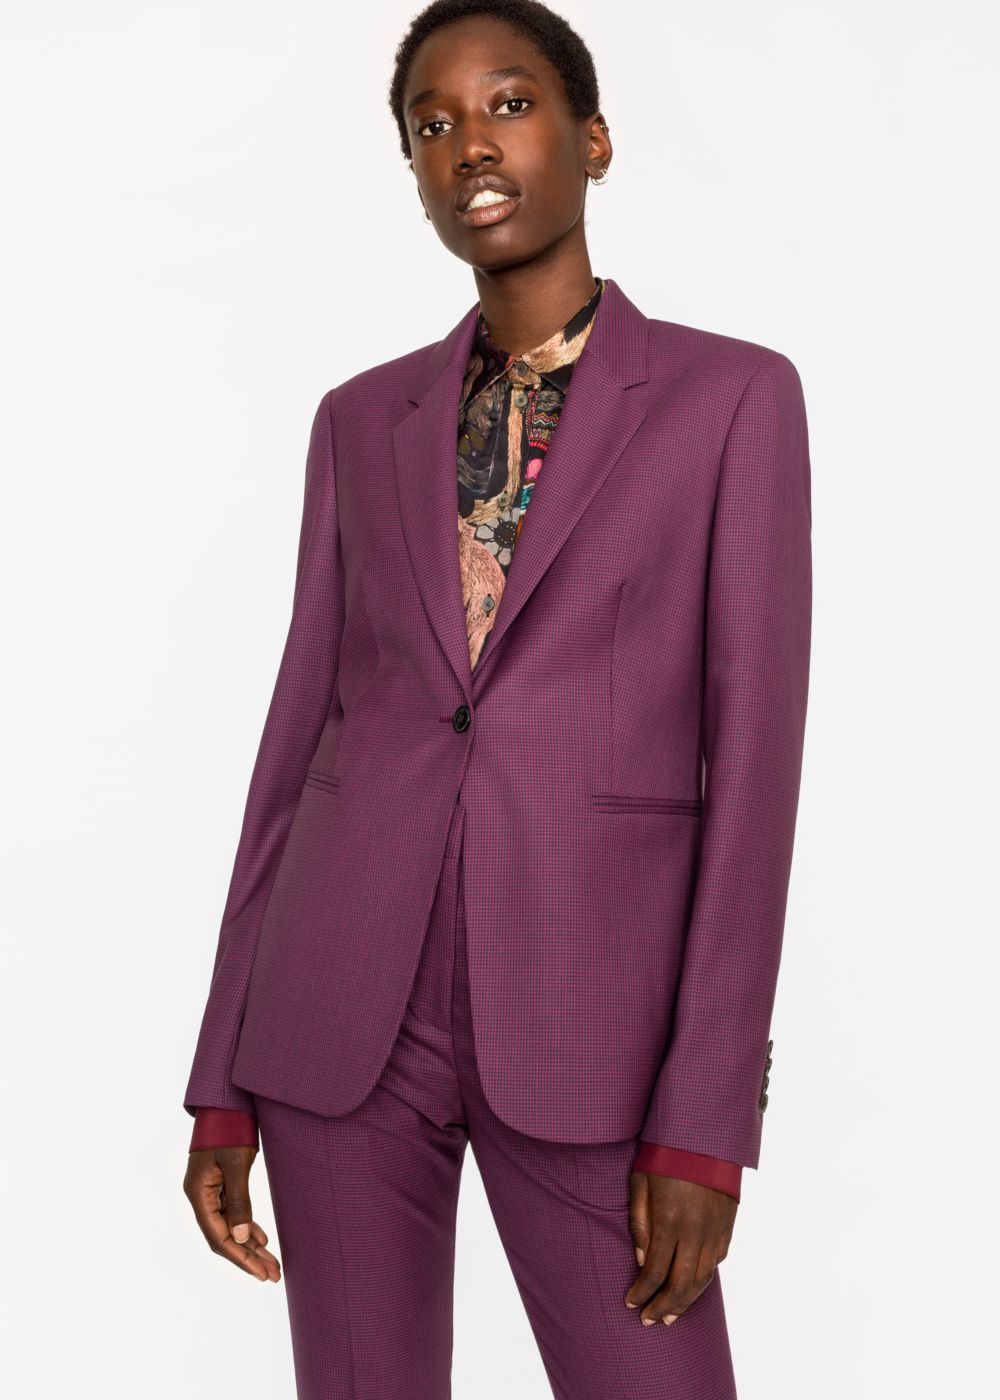 Paul Smith , £525, the  trousers  come in at £275 This is a big price leap for my high street edit- but gosh the details on it are gorgeous and the quality is beautiful. This suit looks amazing with trainers or heels and I love it with tee shirts or a really beautiful pussy bow blouse.